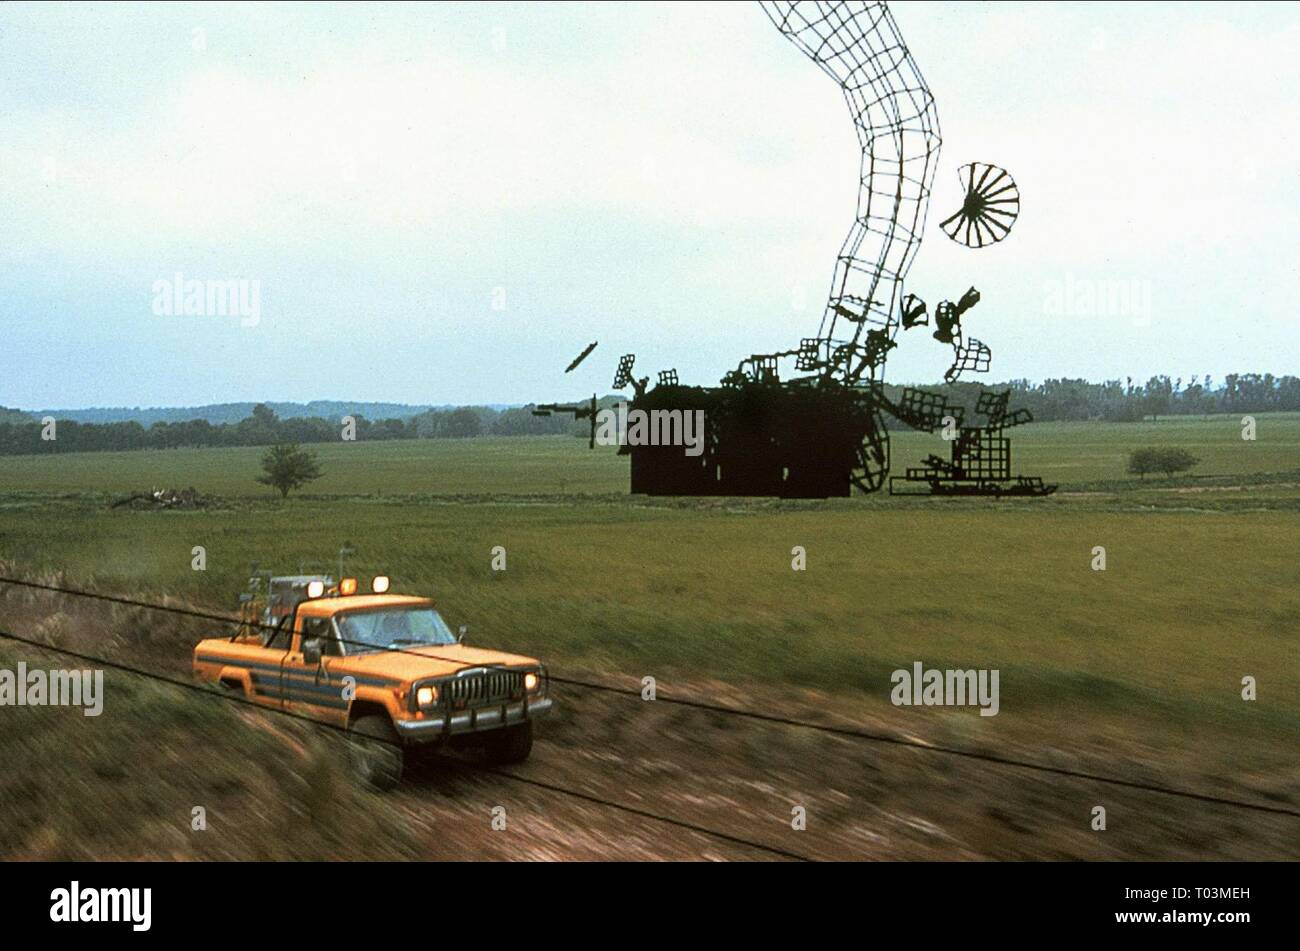 VISUAL EFFECTS (CGI) JEEP IN FIELD SCENE 3 OF 3, TWISTER, 1996 - Stock Image